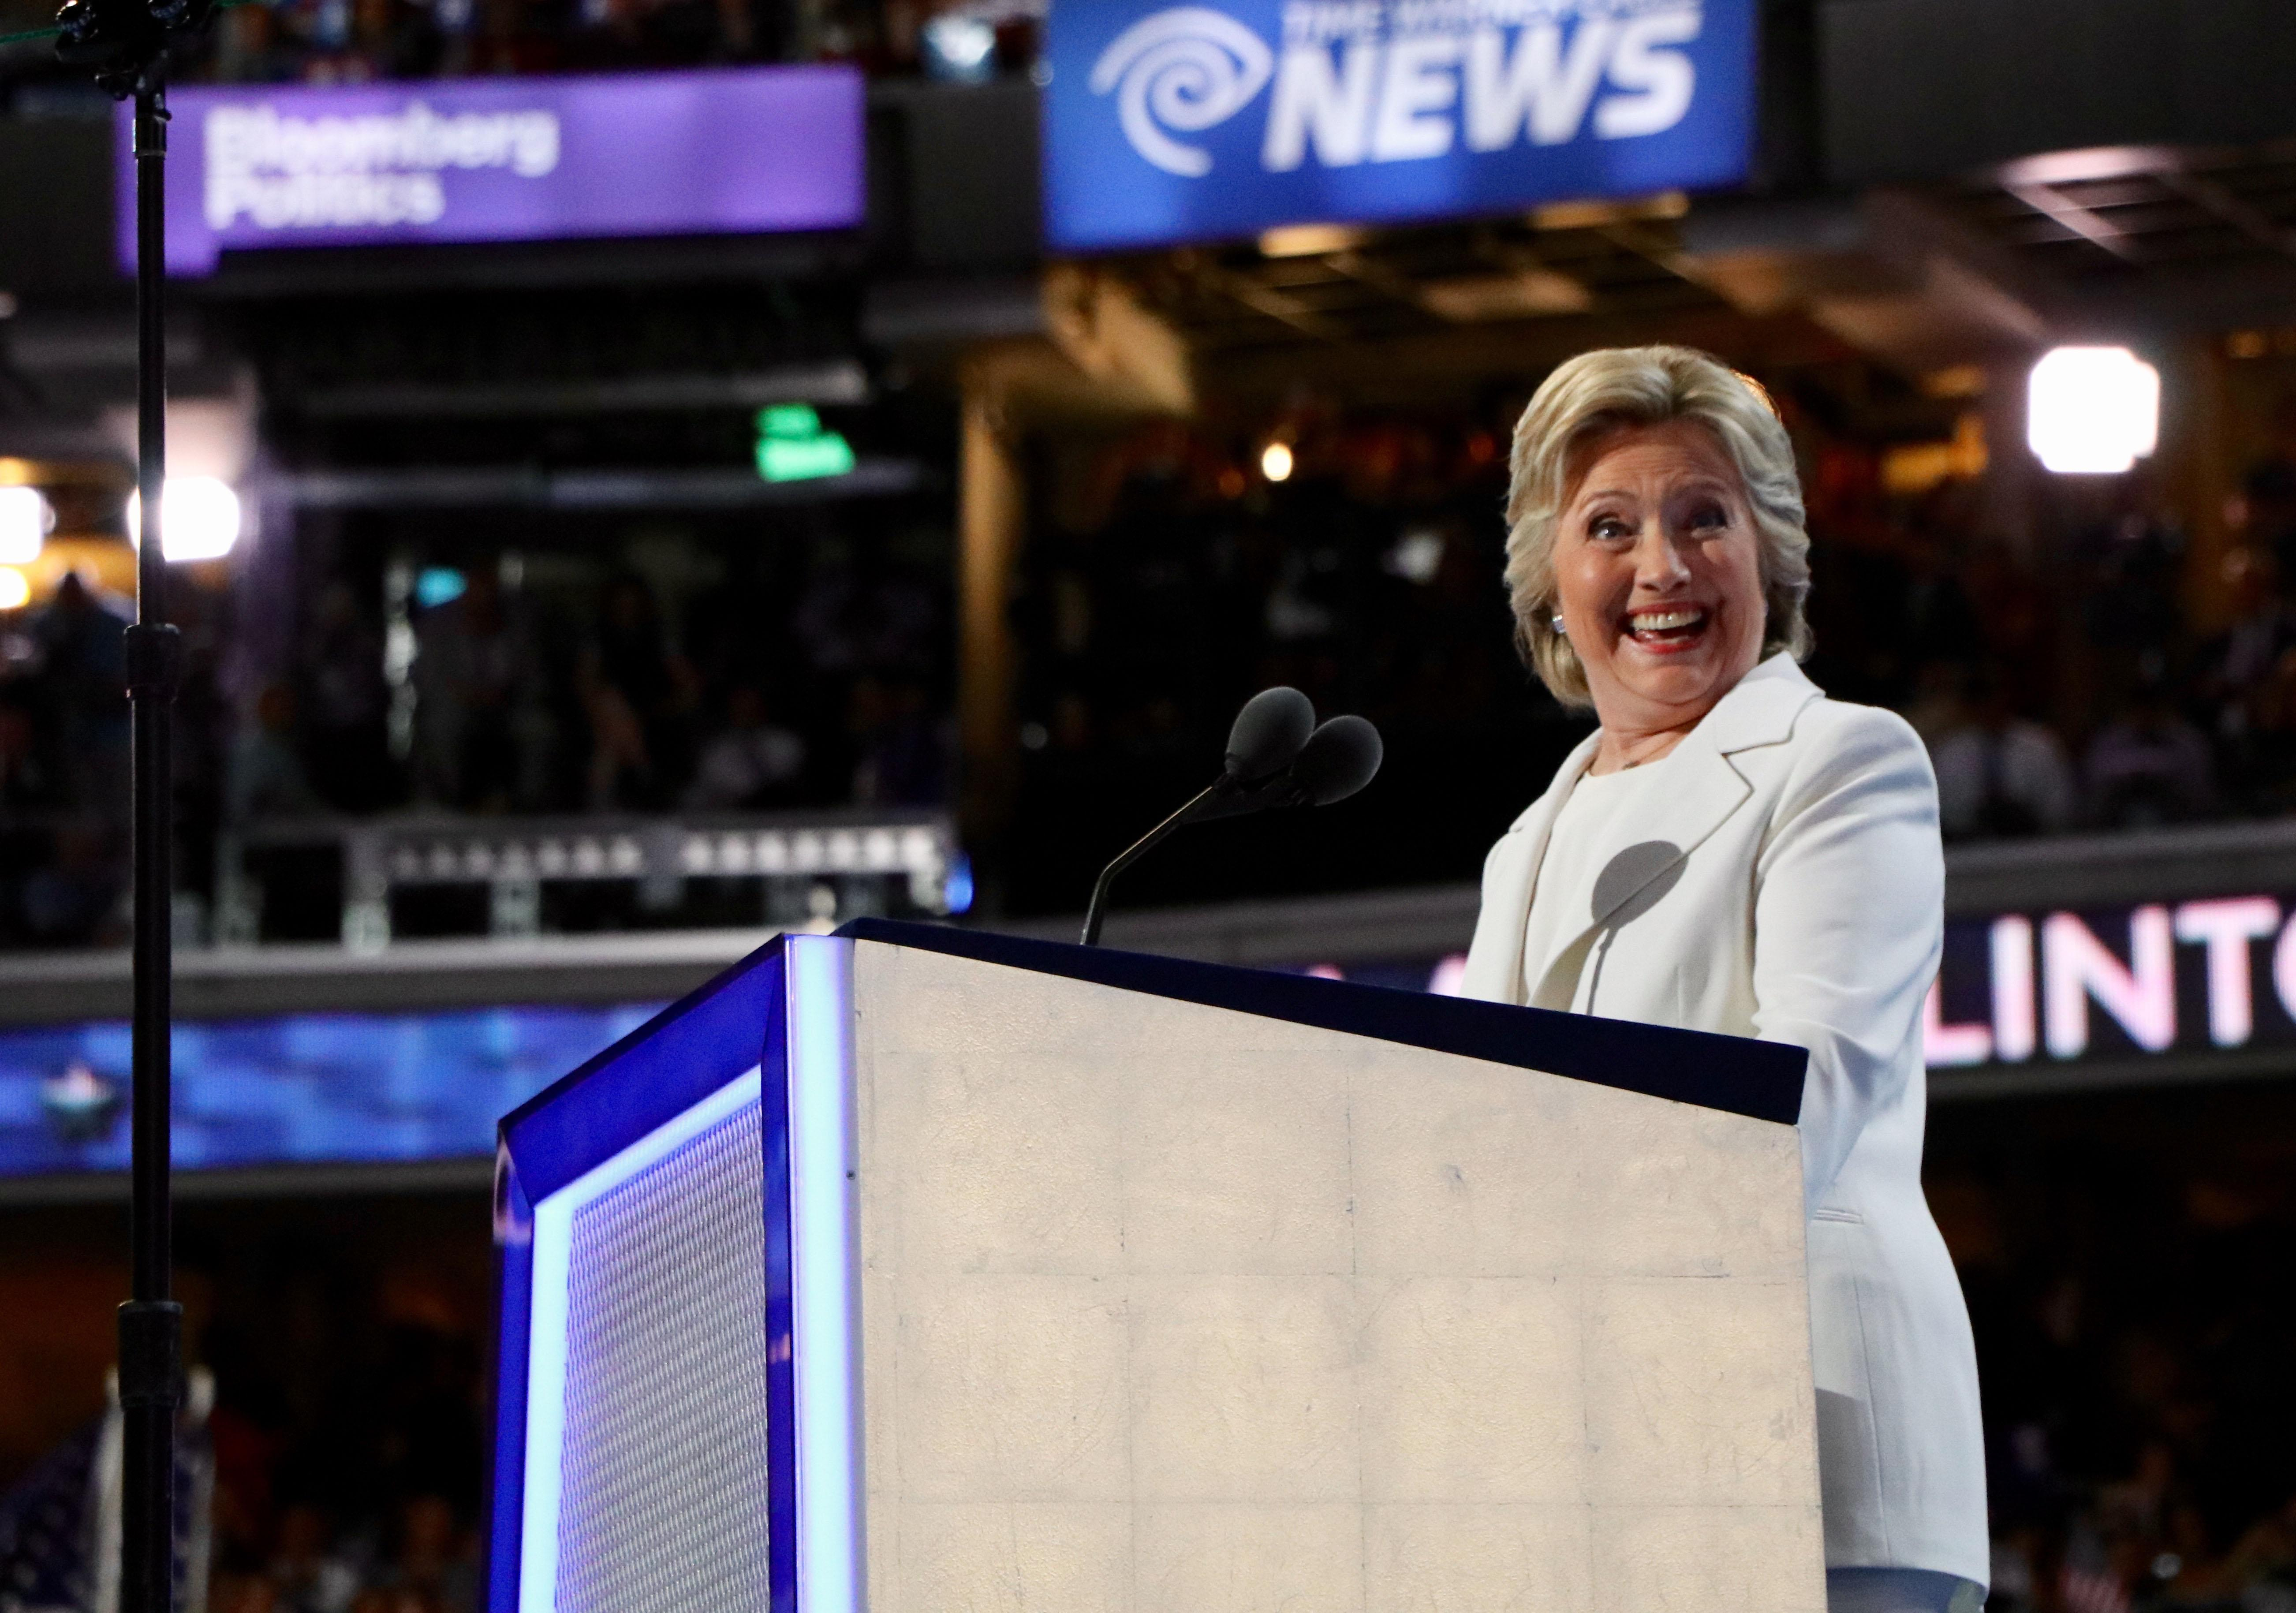 Democratic presidential nominee Hillary Clinton formally accepts her party's nomination on the final night of the Democratic National Convention. (Evan Garcia / Chicago Tonight)